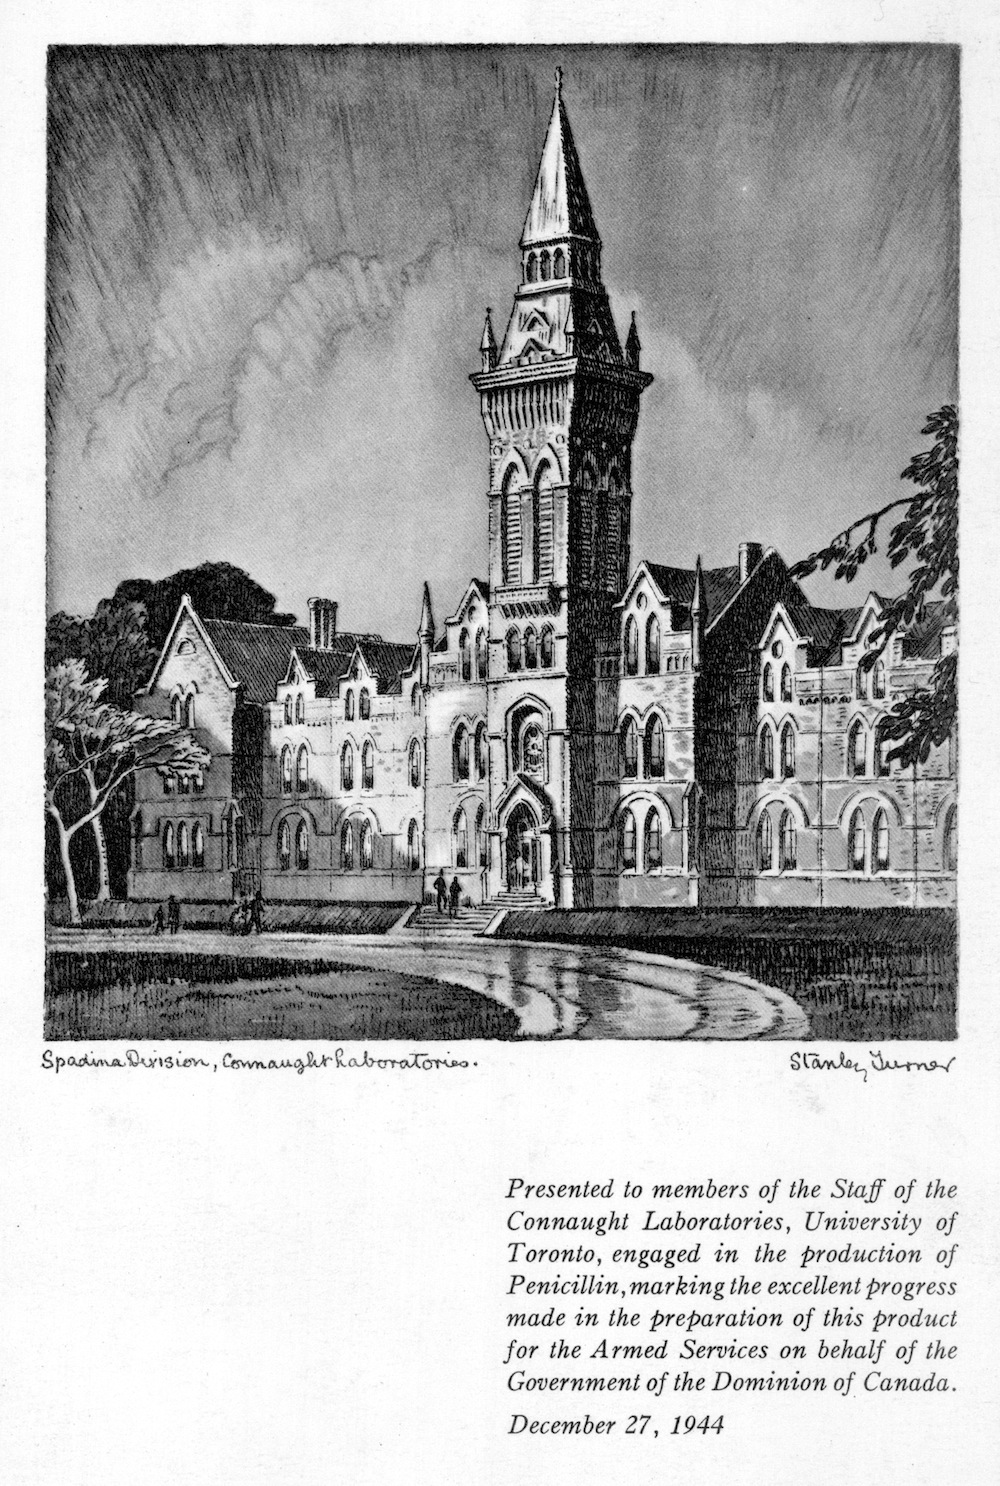 When the urgent order of penicillin for the Canadian military was completed, the size of the staff was reduced; upon leaving in December 1944, these staff were given a thank you card by the Labs with a specially commissioned sketch of the Spadina Building by artist Stanley Turner.